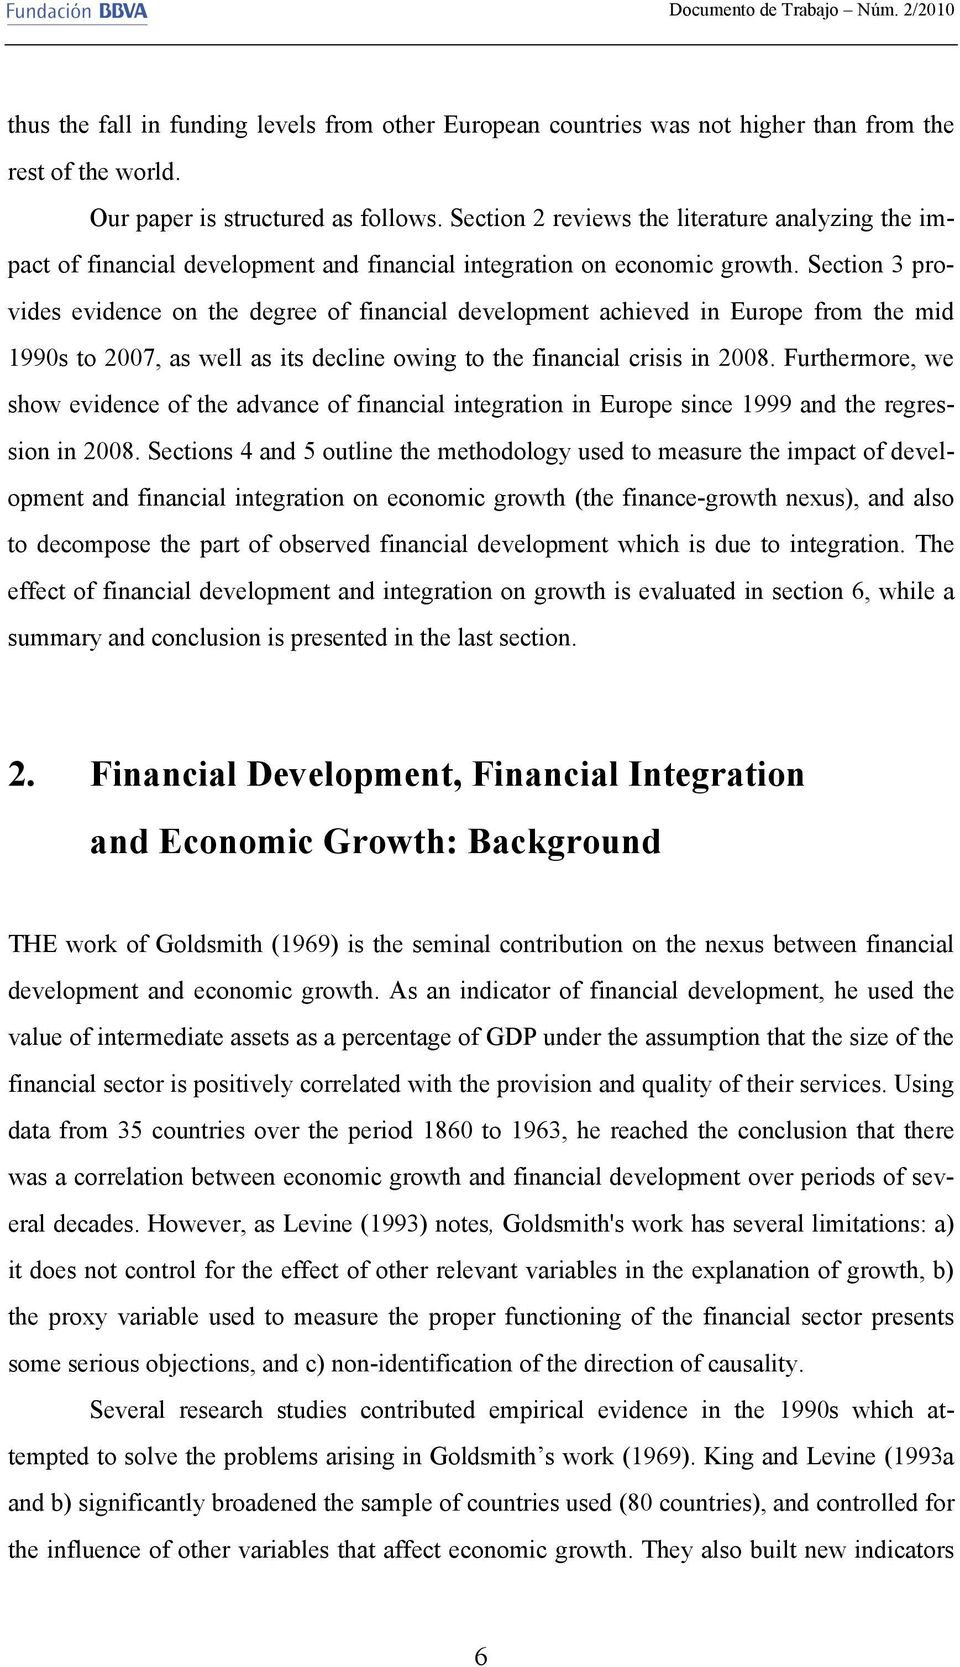 Section 3 provides evidence on the degree of financial development achieved in Europe from the mid 1990s to 2007, as well as its decline owing to the financial crisis in 2008.